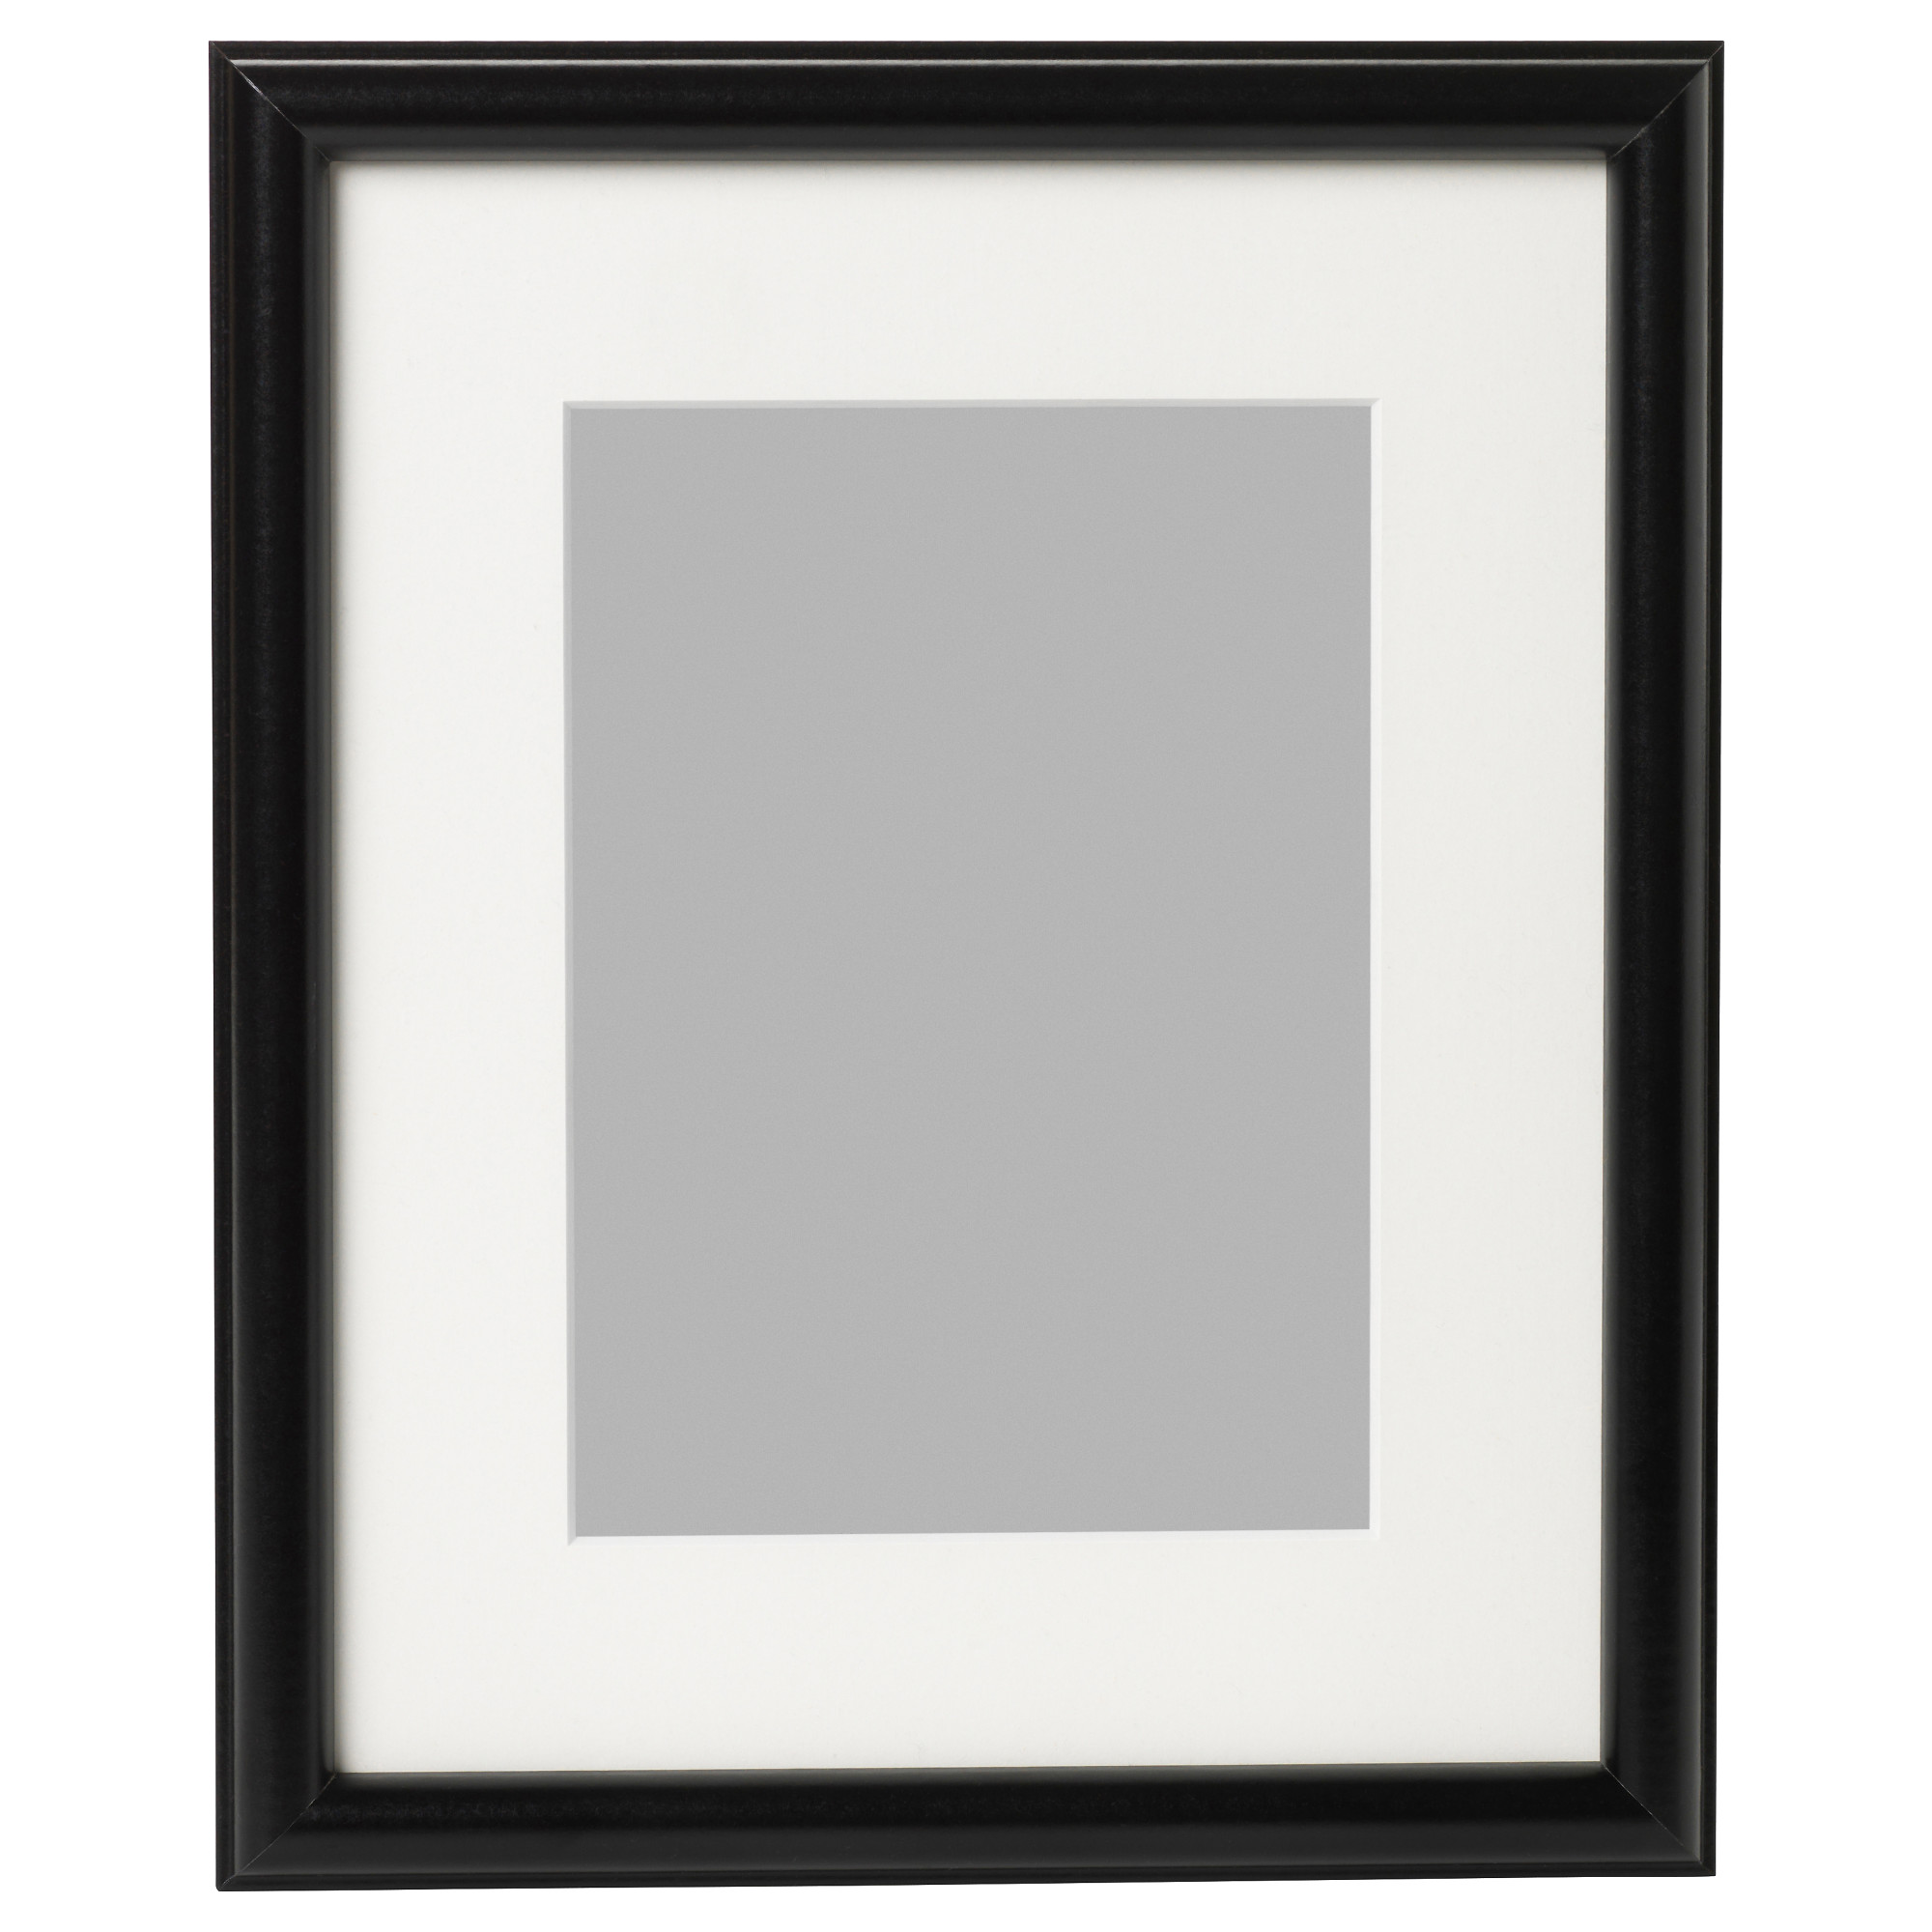 Wall mounted poster frames 36 x 45